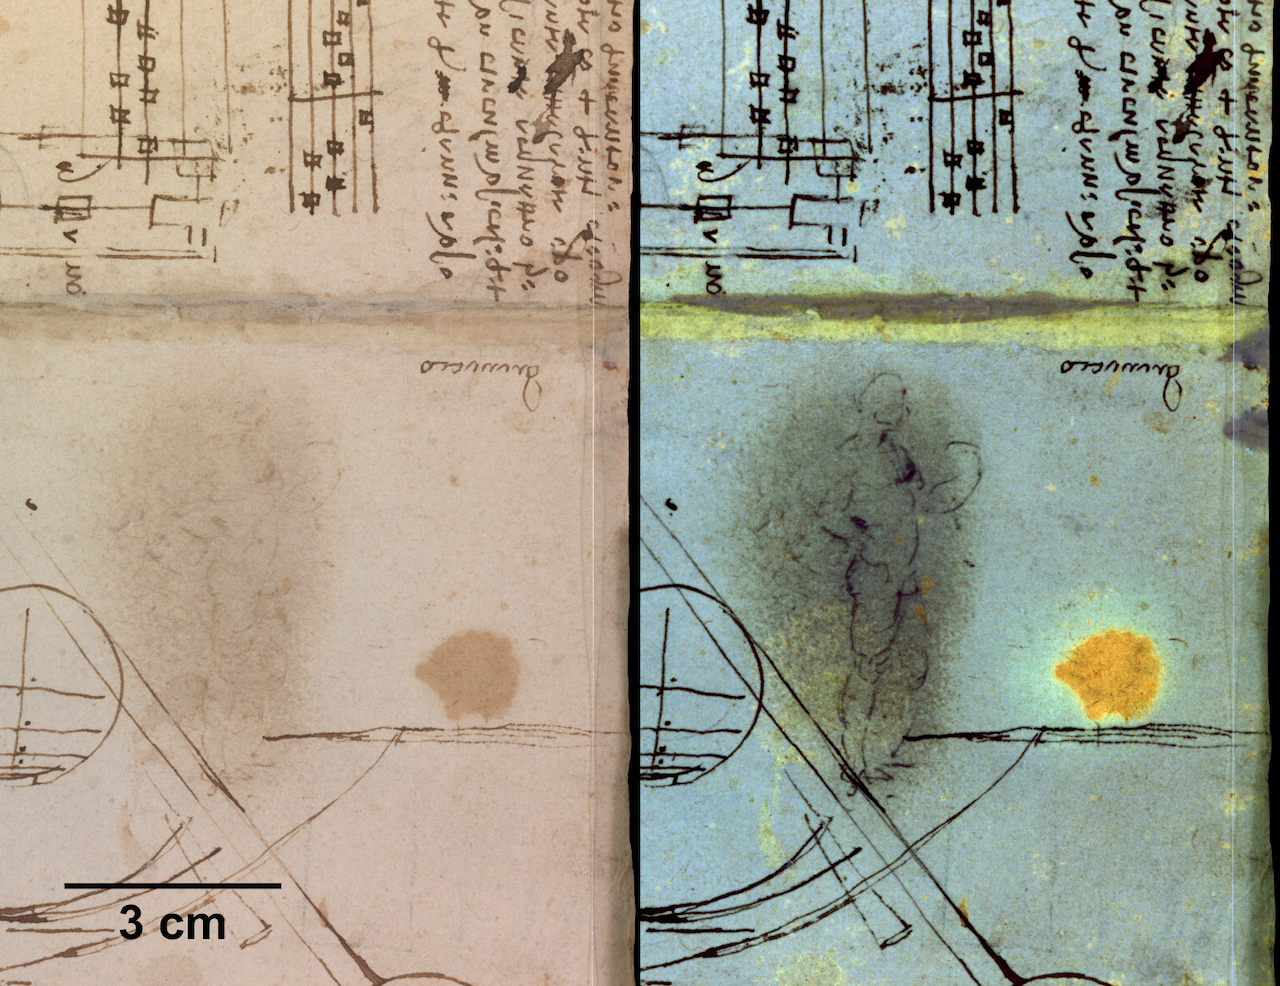 Folio from a Leonardo da Vinci notebook, with the naked eye view at left, and the multispectral imaging view at right (courtesy British Library)